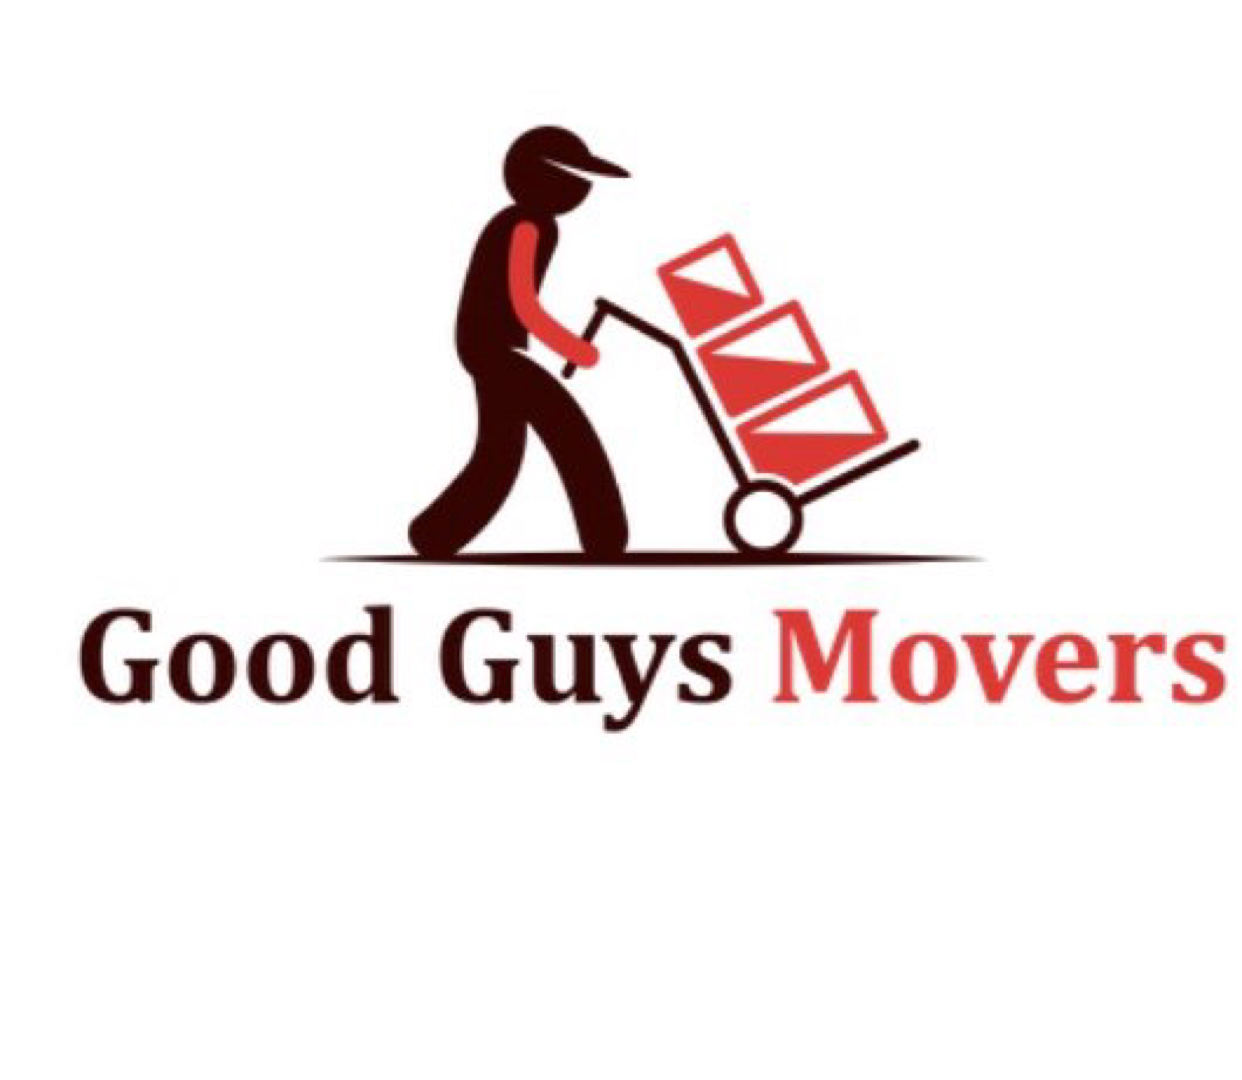 Good Guys Movers